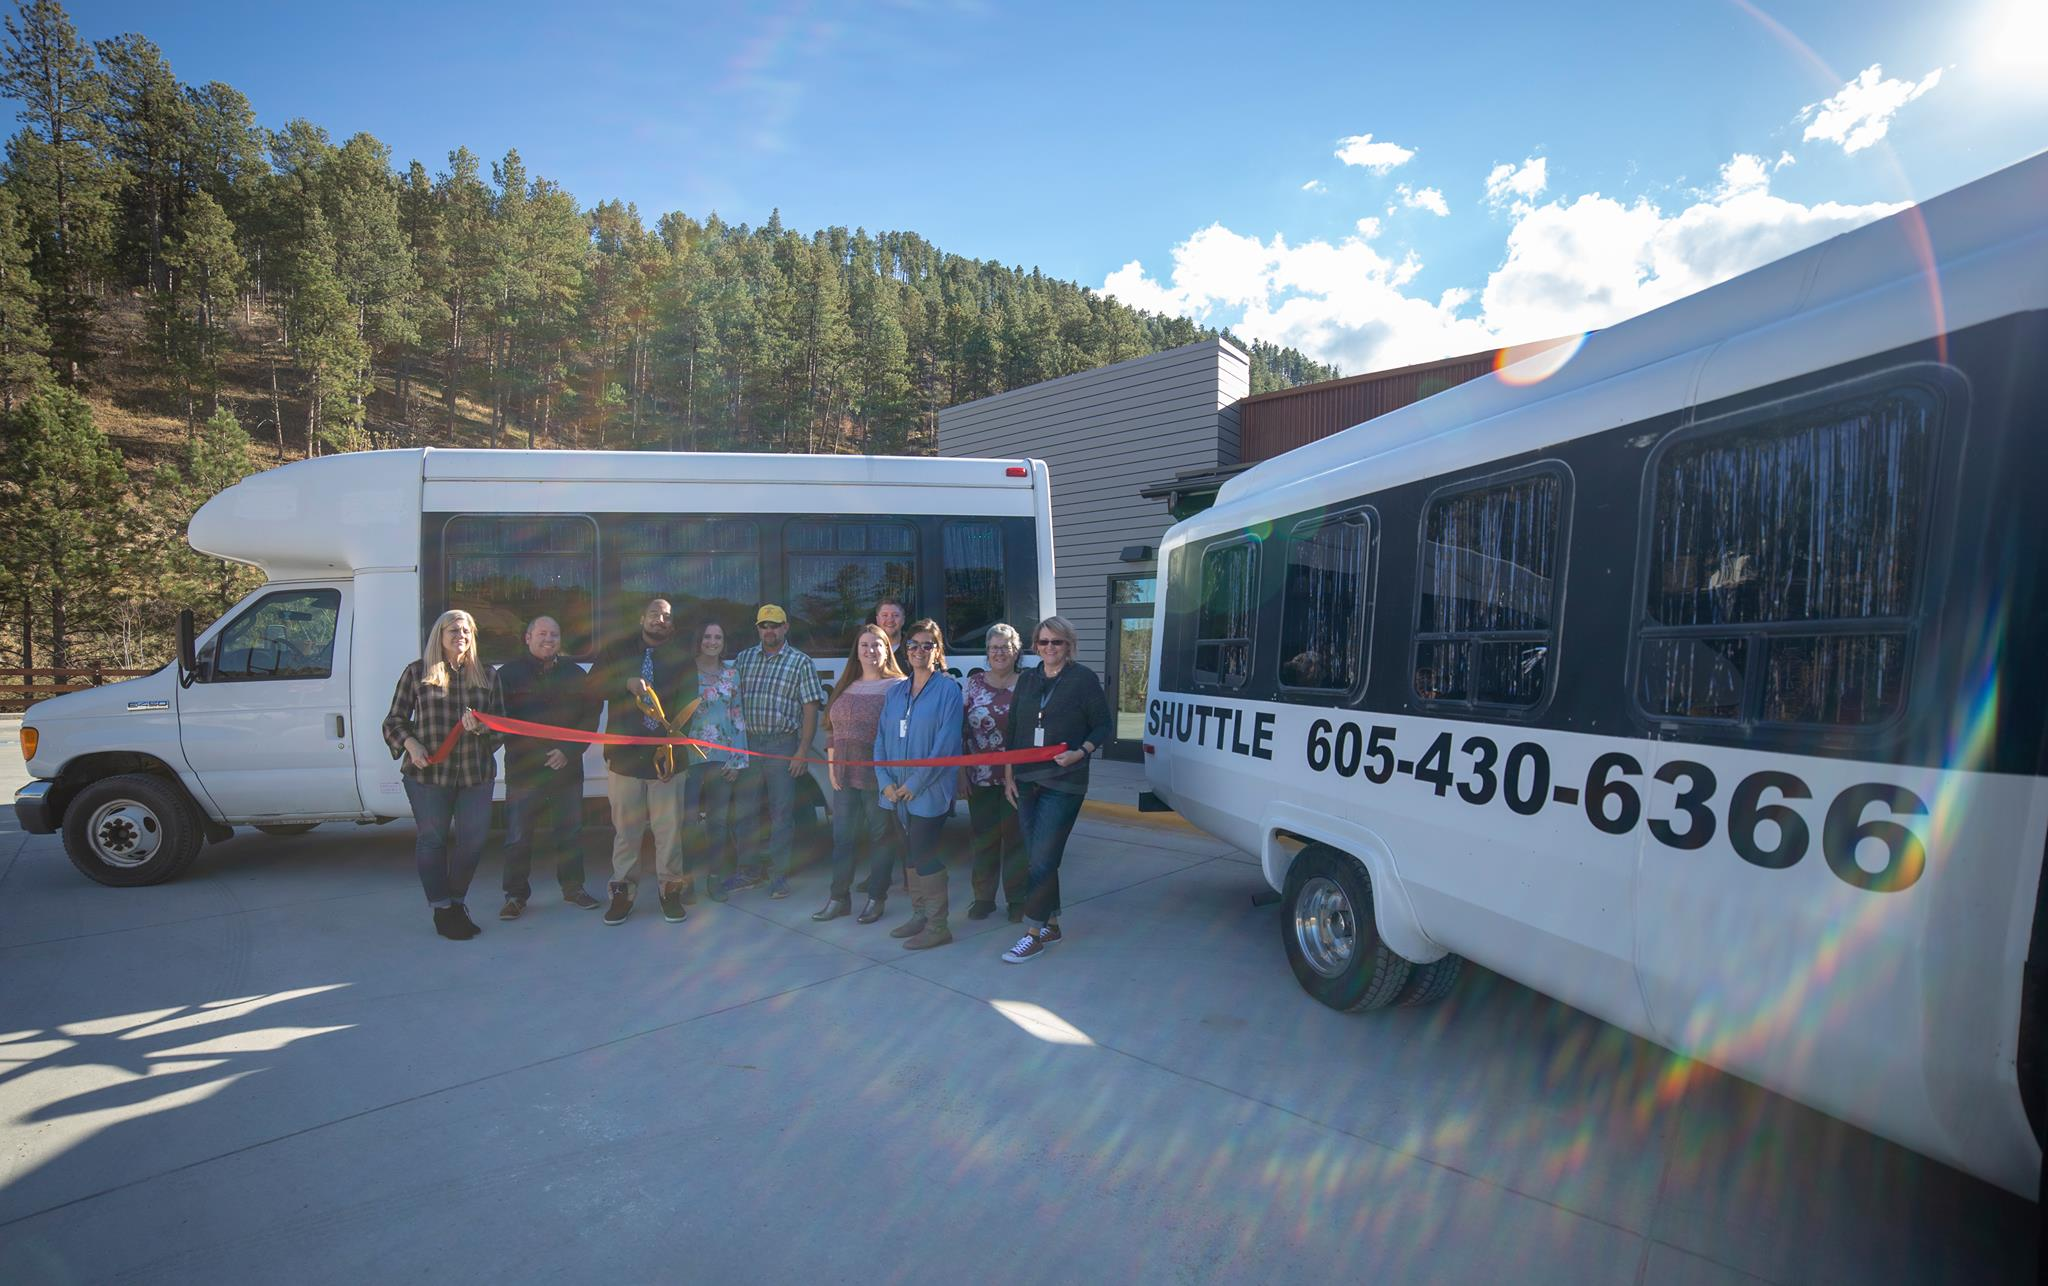 Another picture of the same group of ten people standing proudly in front of one of the shuttles during the ribbon cutting ceremony, including the driver - Jordan, and the owner - Stacey Phillips.